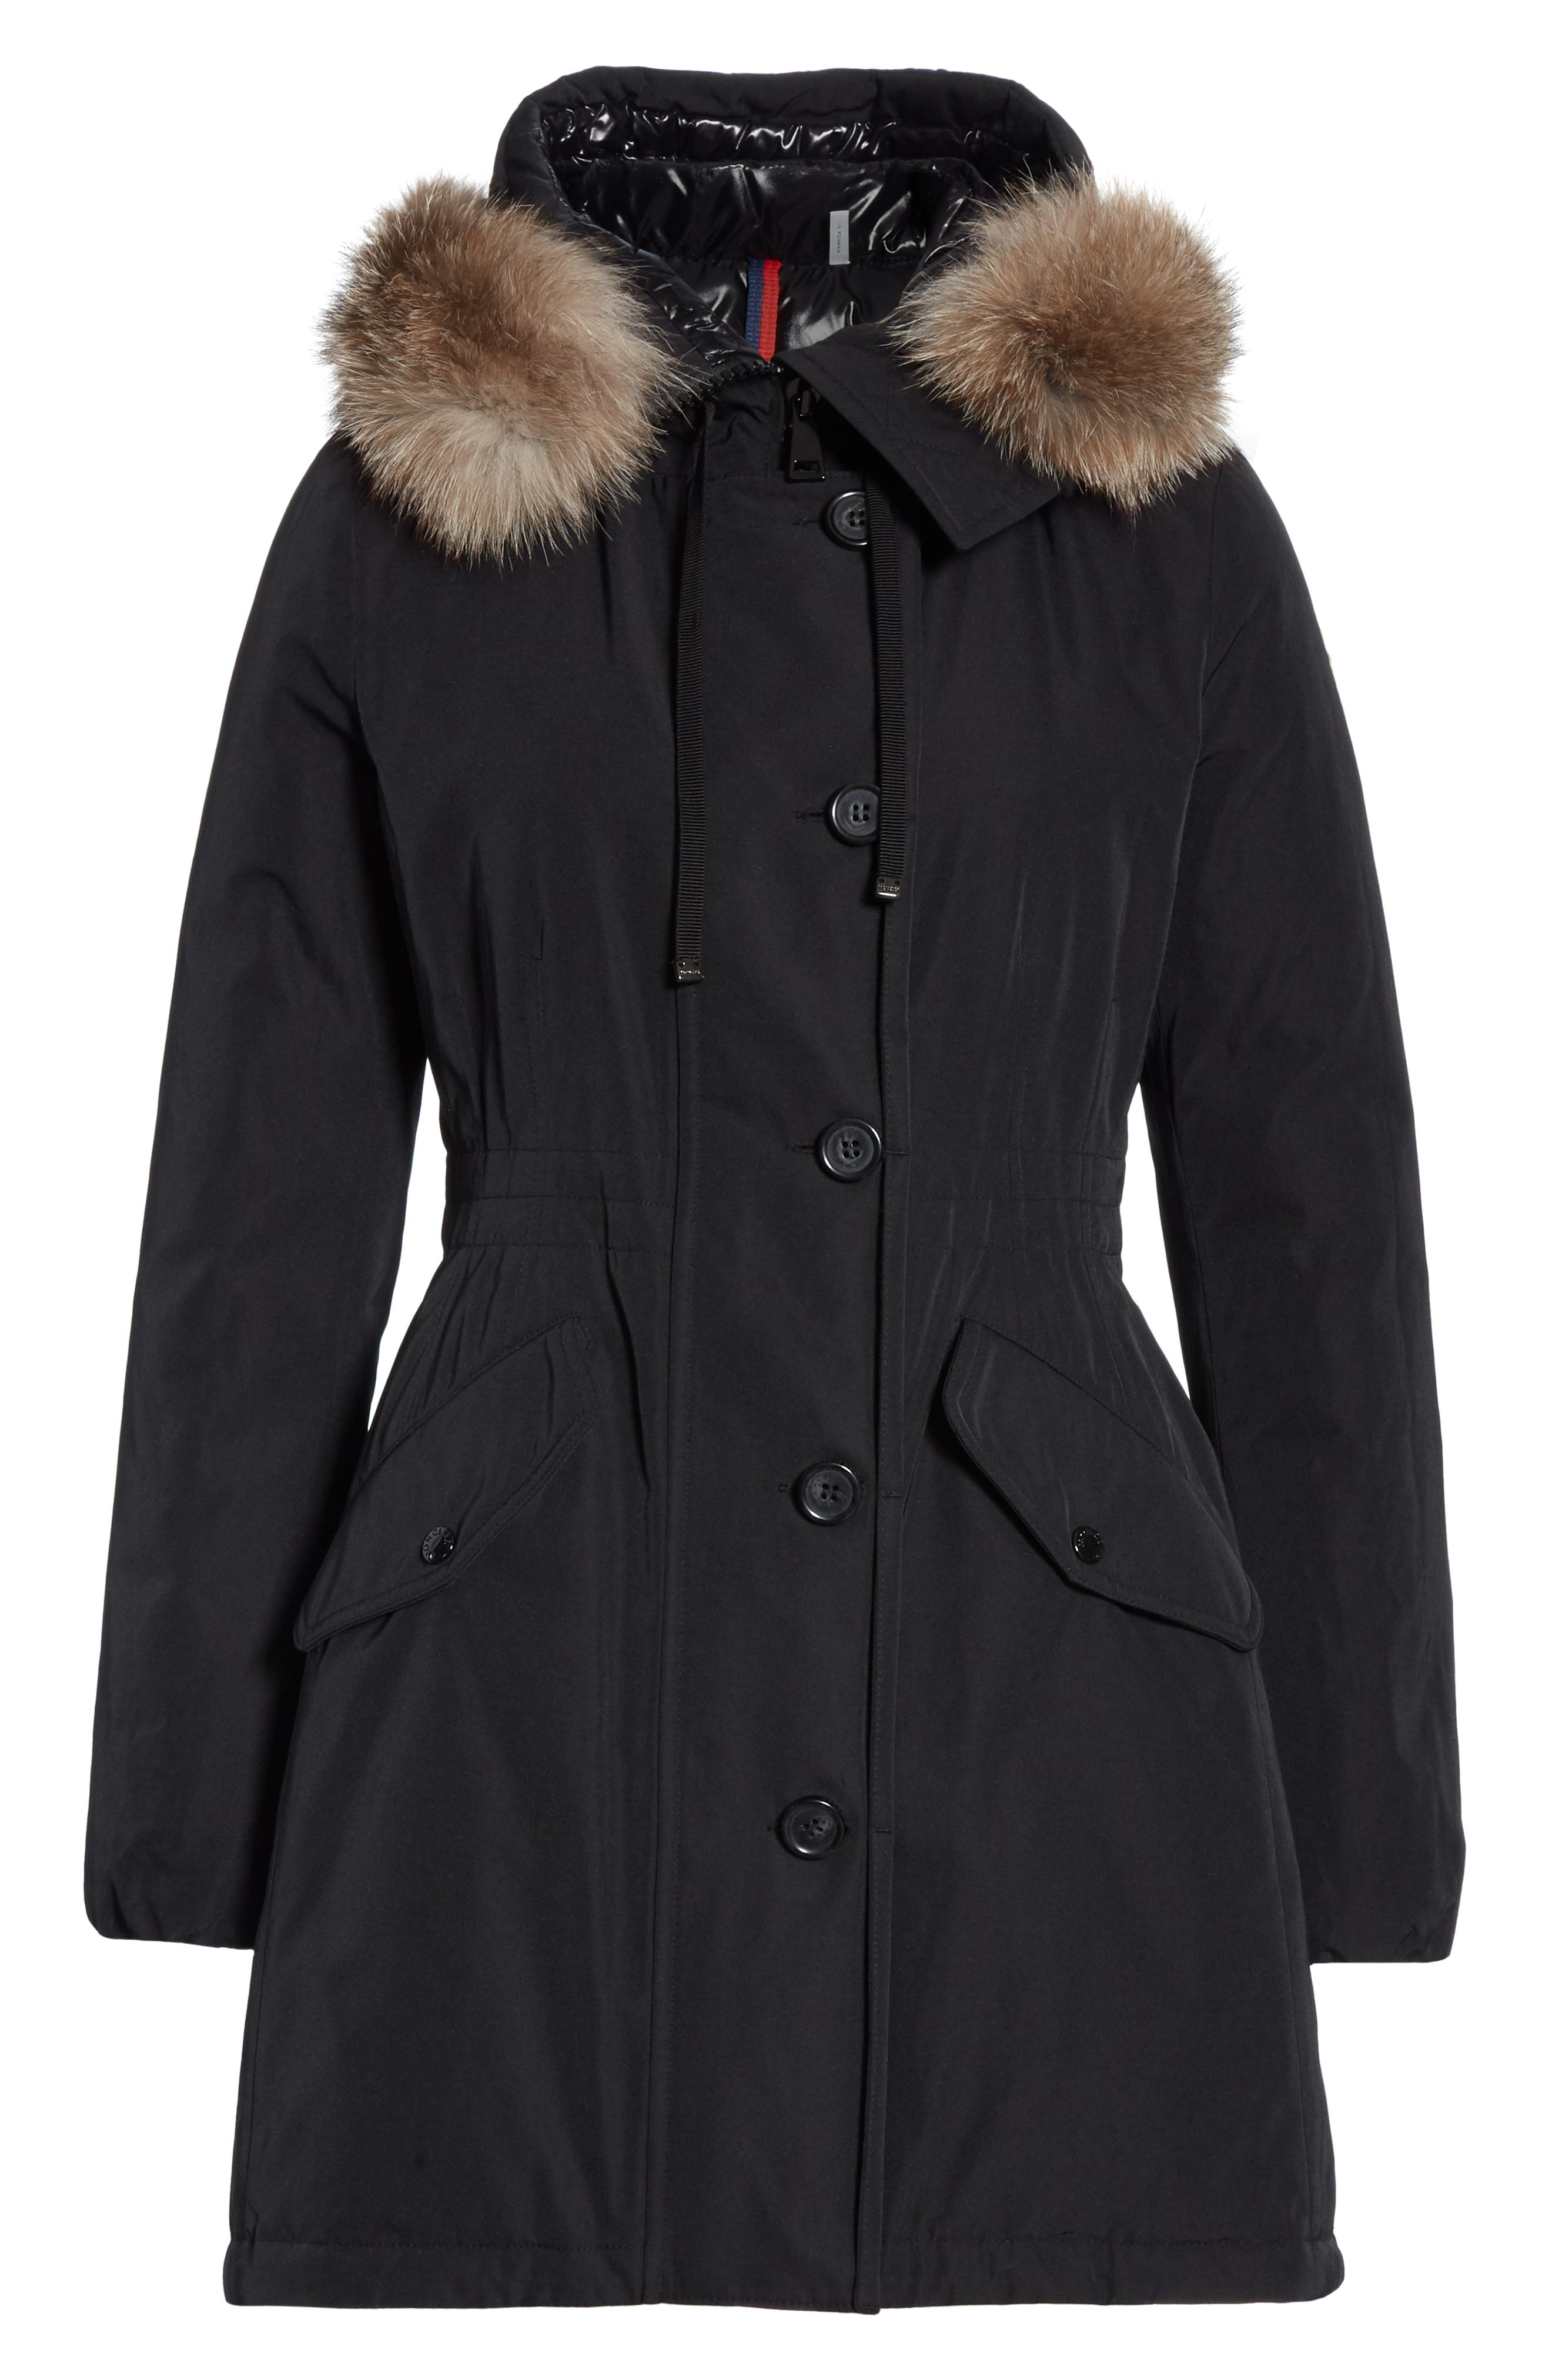 Monticole Hooded Down Coat with Removable Genuine Fox Fur Trim,                             Alternate thumbnail 6, color,                             BLACK